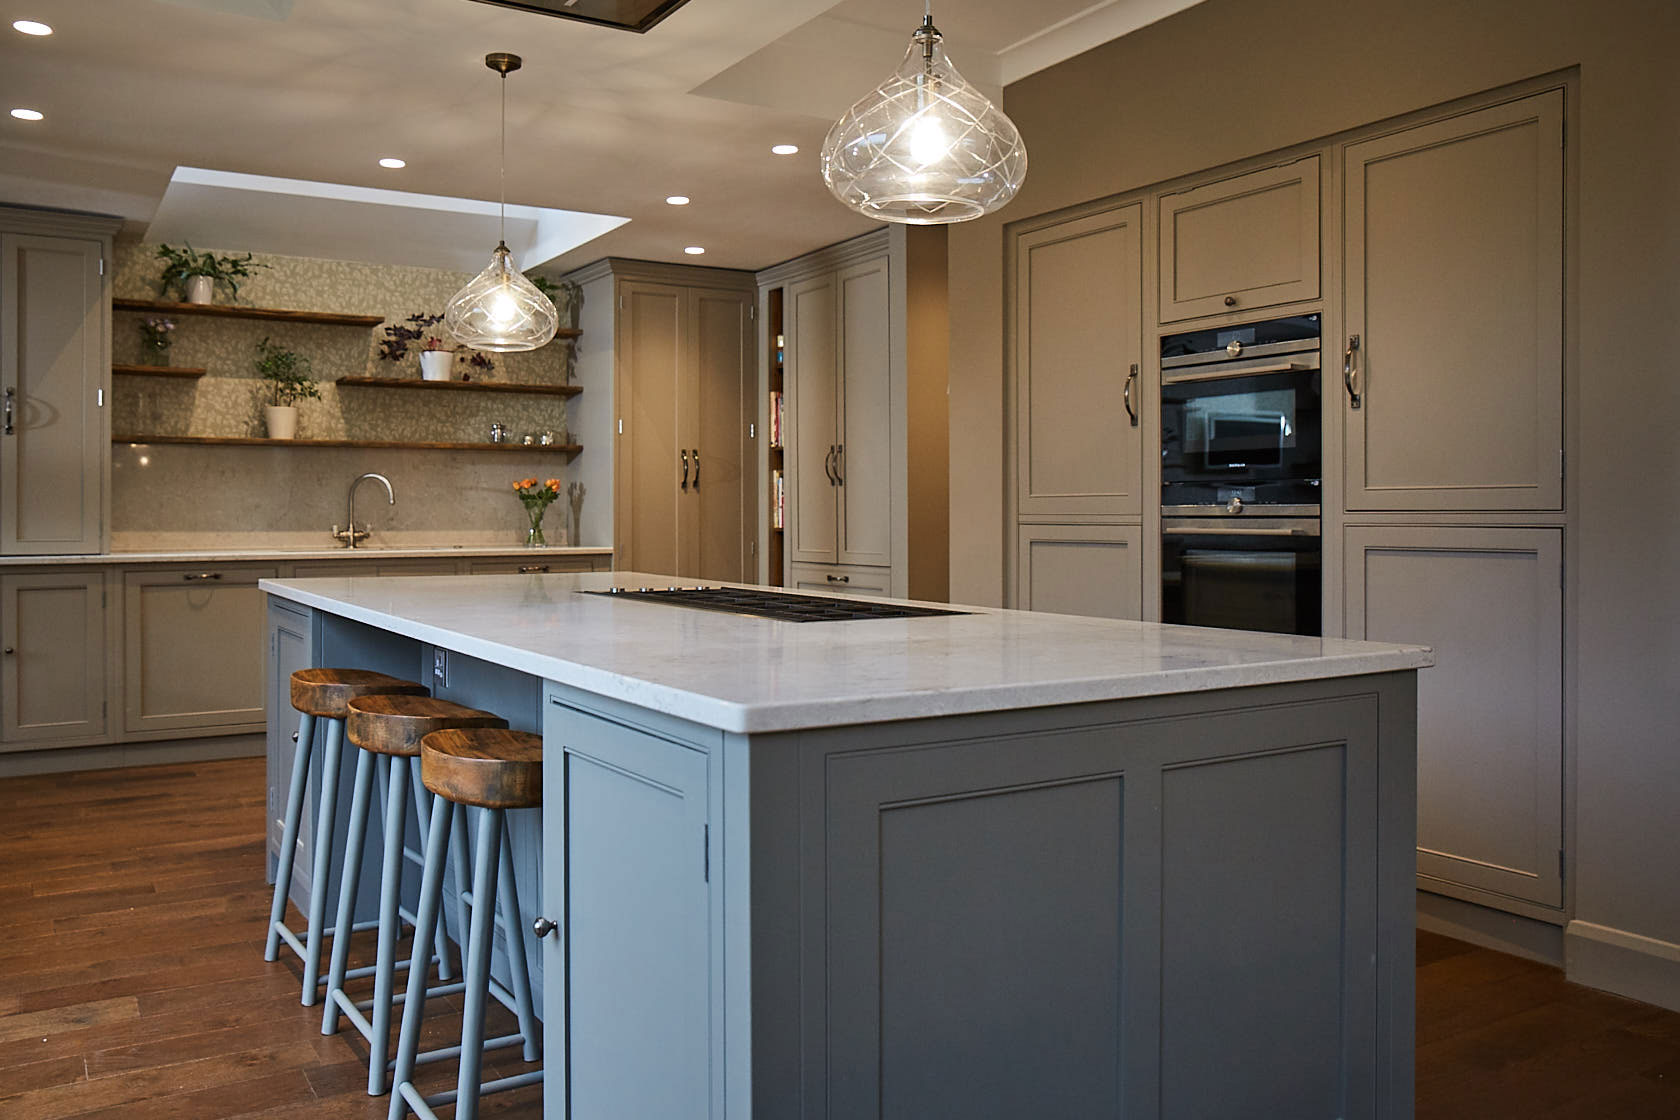 Crystal pendant light over kitchen island with white worktops